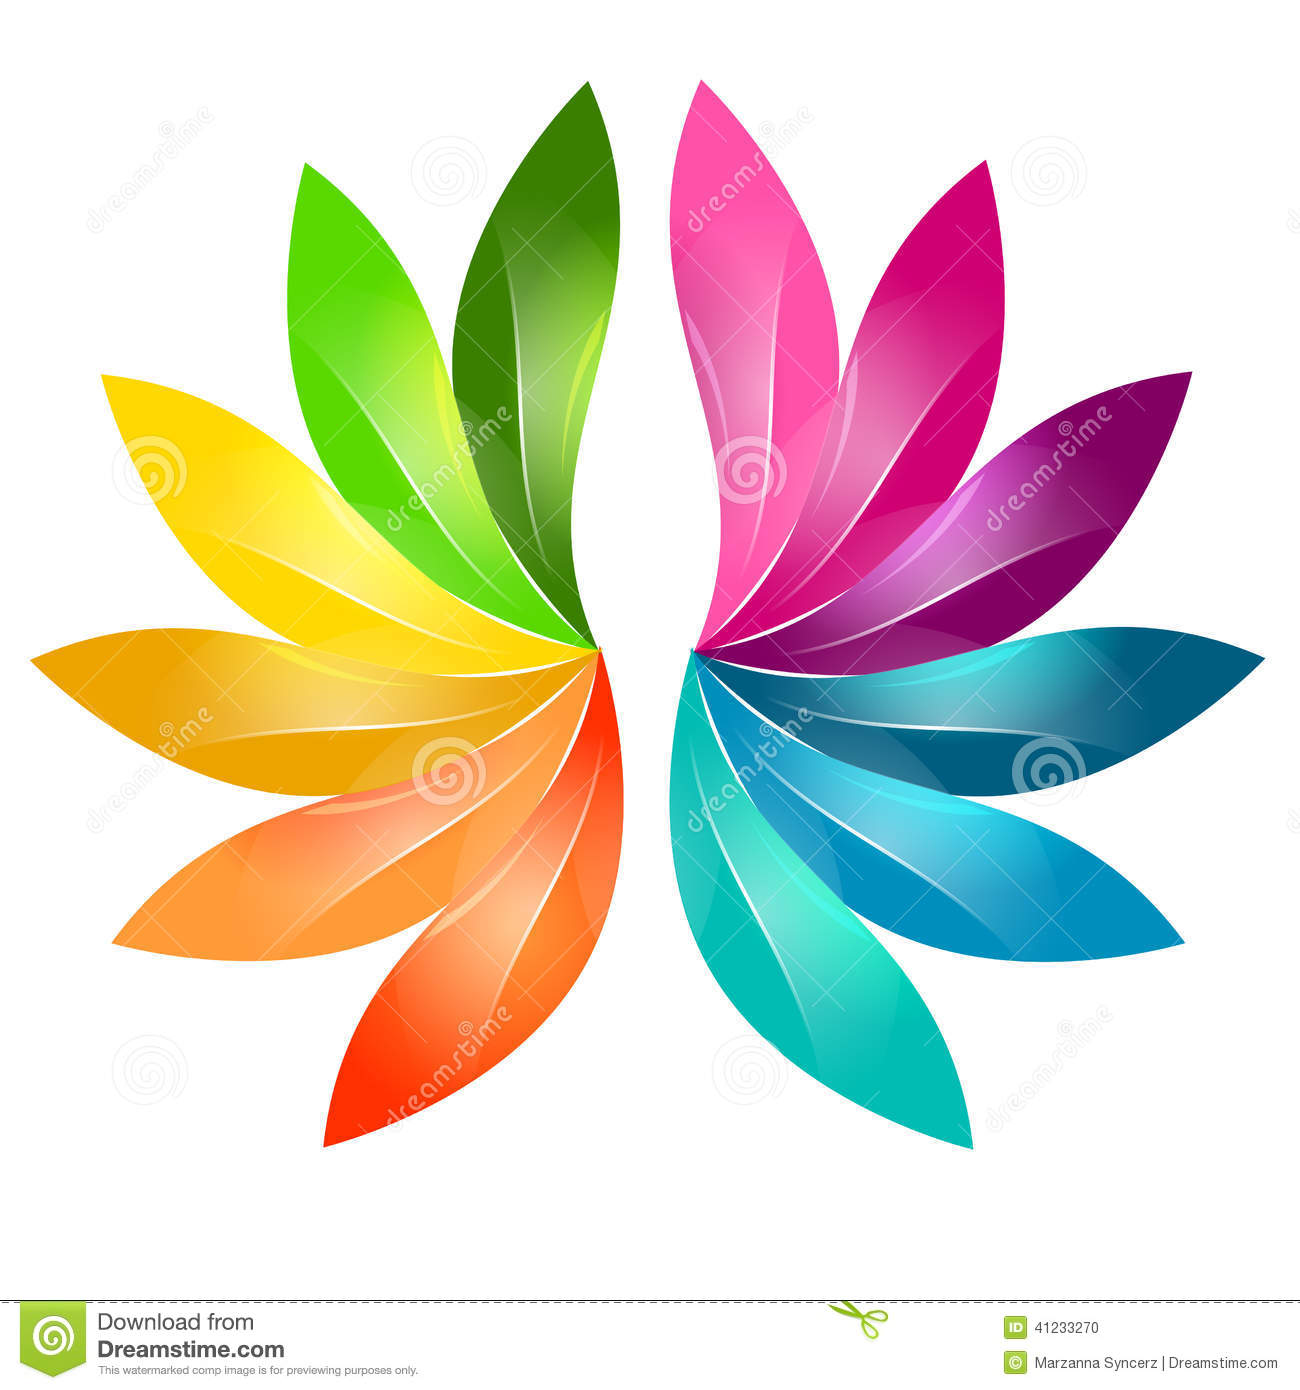 colorful abstract floral design stock vector illustration of